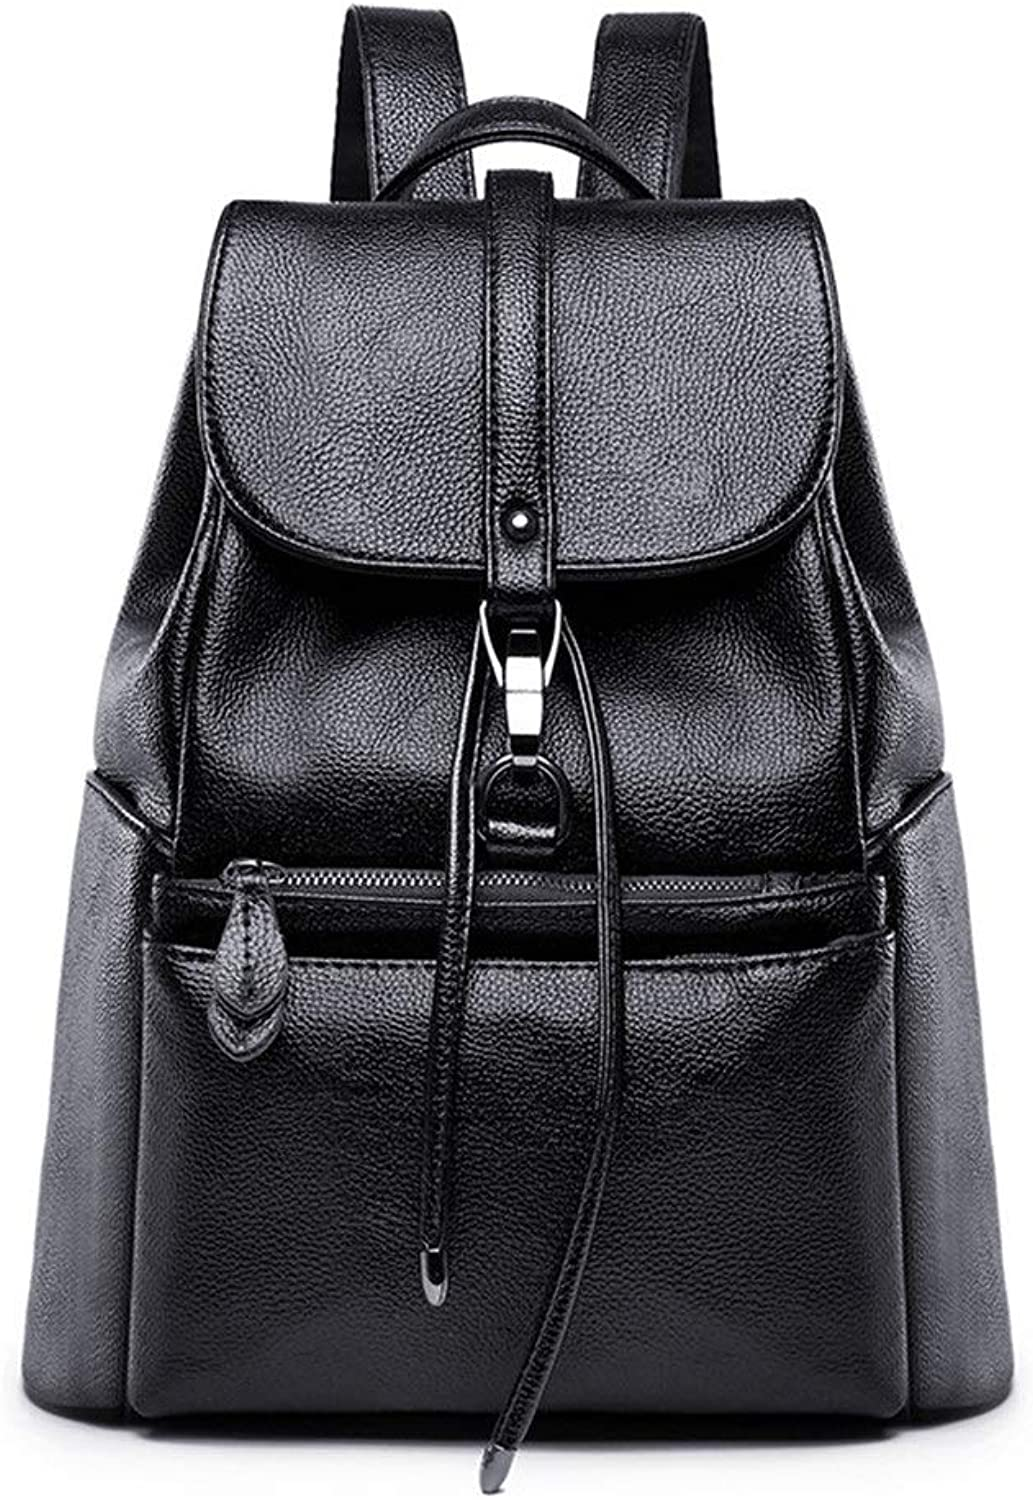 Fashion Ladies Backpack Women's Pu Leather Wild Women's Travel Bag New Ladies Backpack (color   Black, Size   One Size)